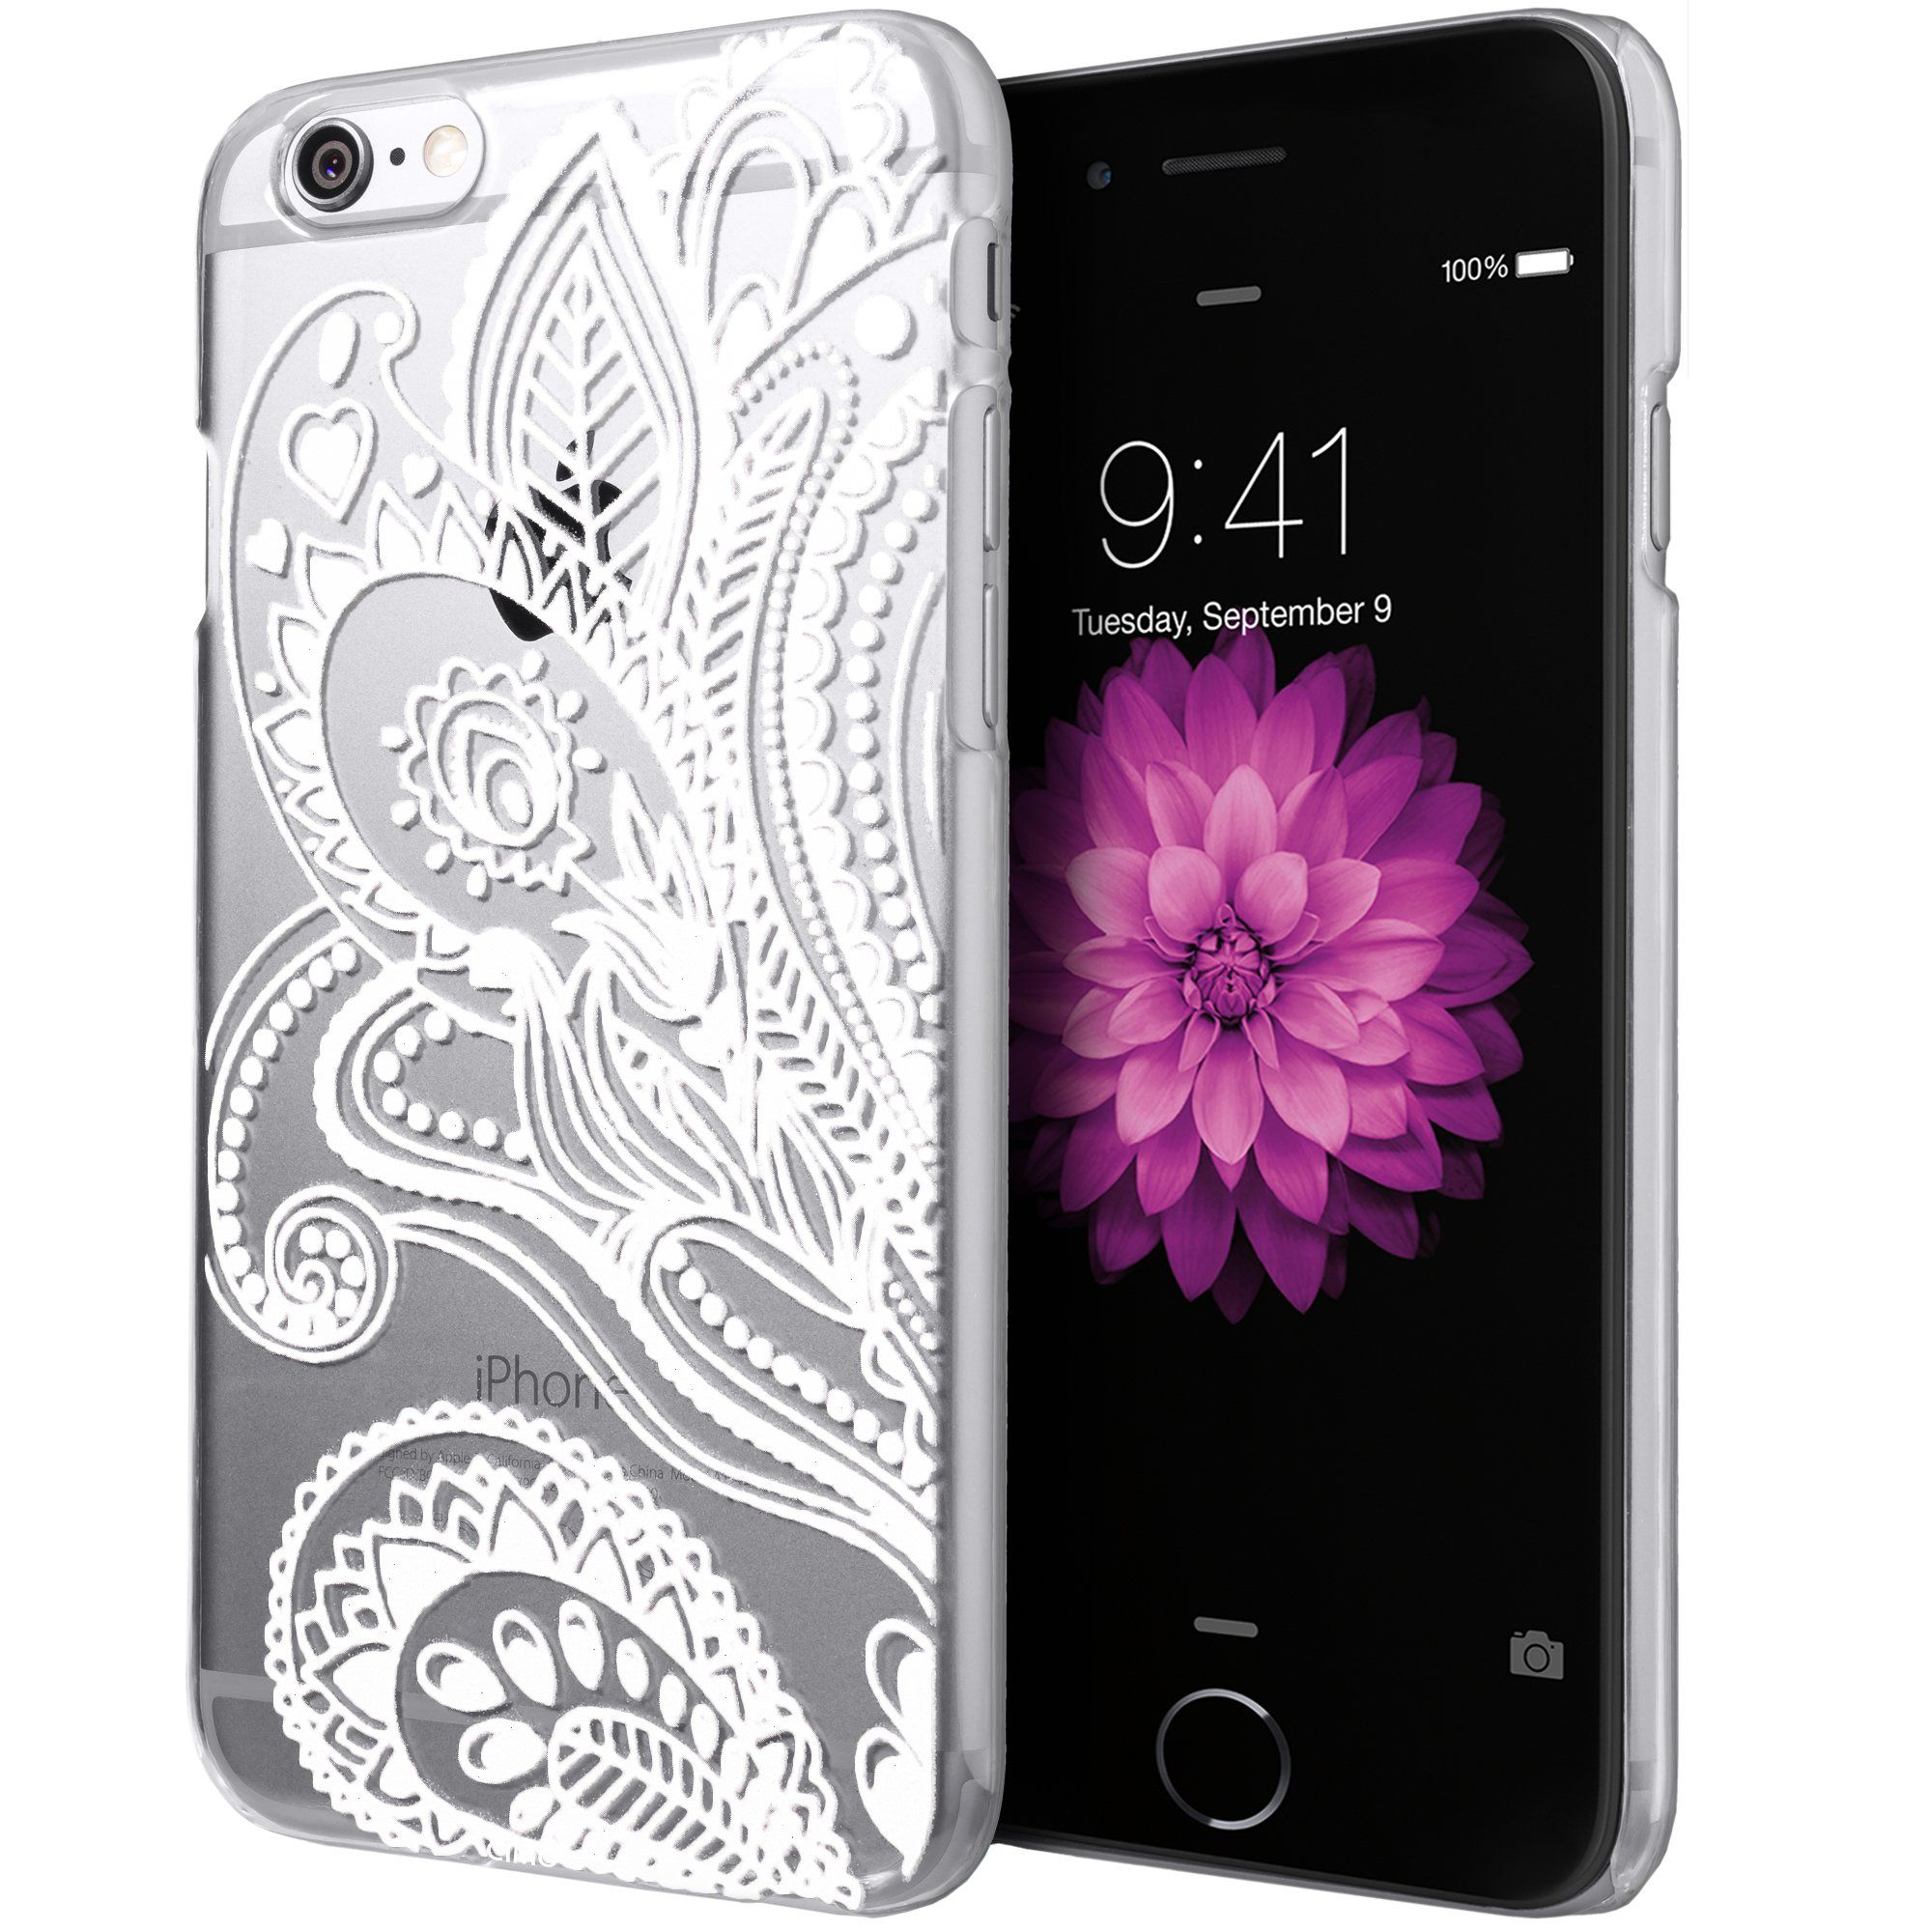 3376ba65be ... [Henna] Apple iPhone 6 Case Clear Design Floral Flower Pattern Premium ULTRA  SLIM Hard Cover for Apple iPhone 6 (4.7) - Black: Cell Phones & Accessories